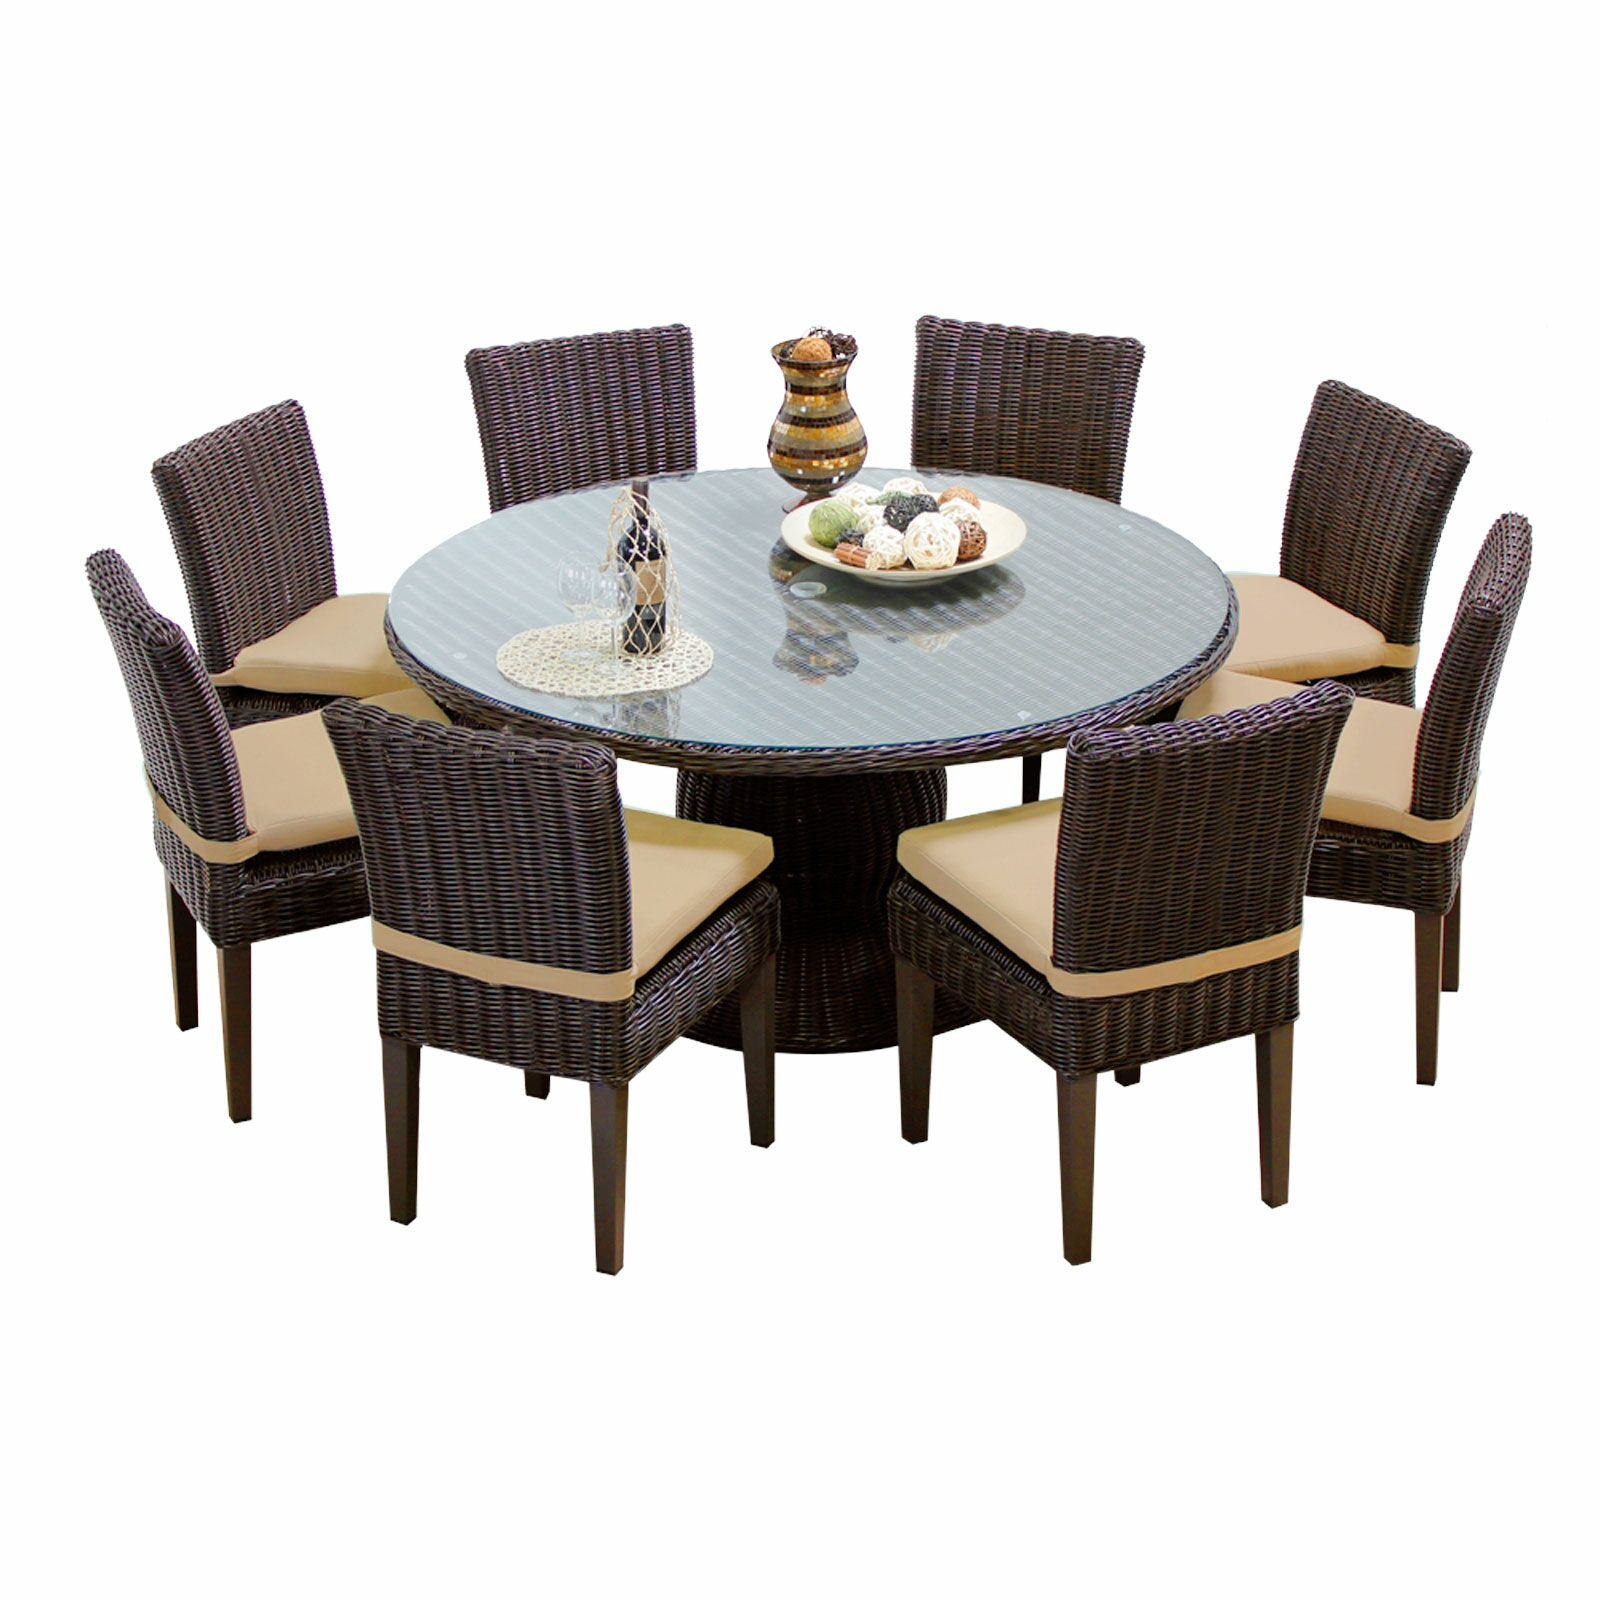 Eldredge 9 Piece Dining Set with Cushions Color: Wheat